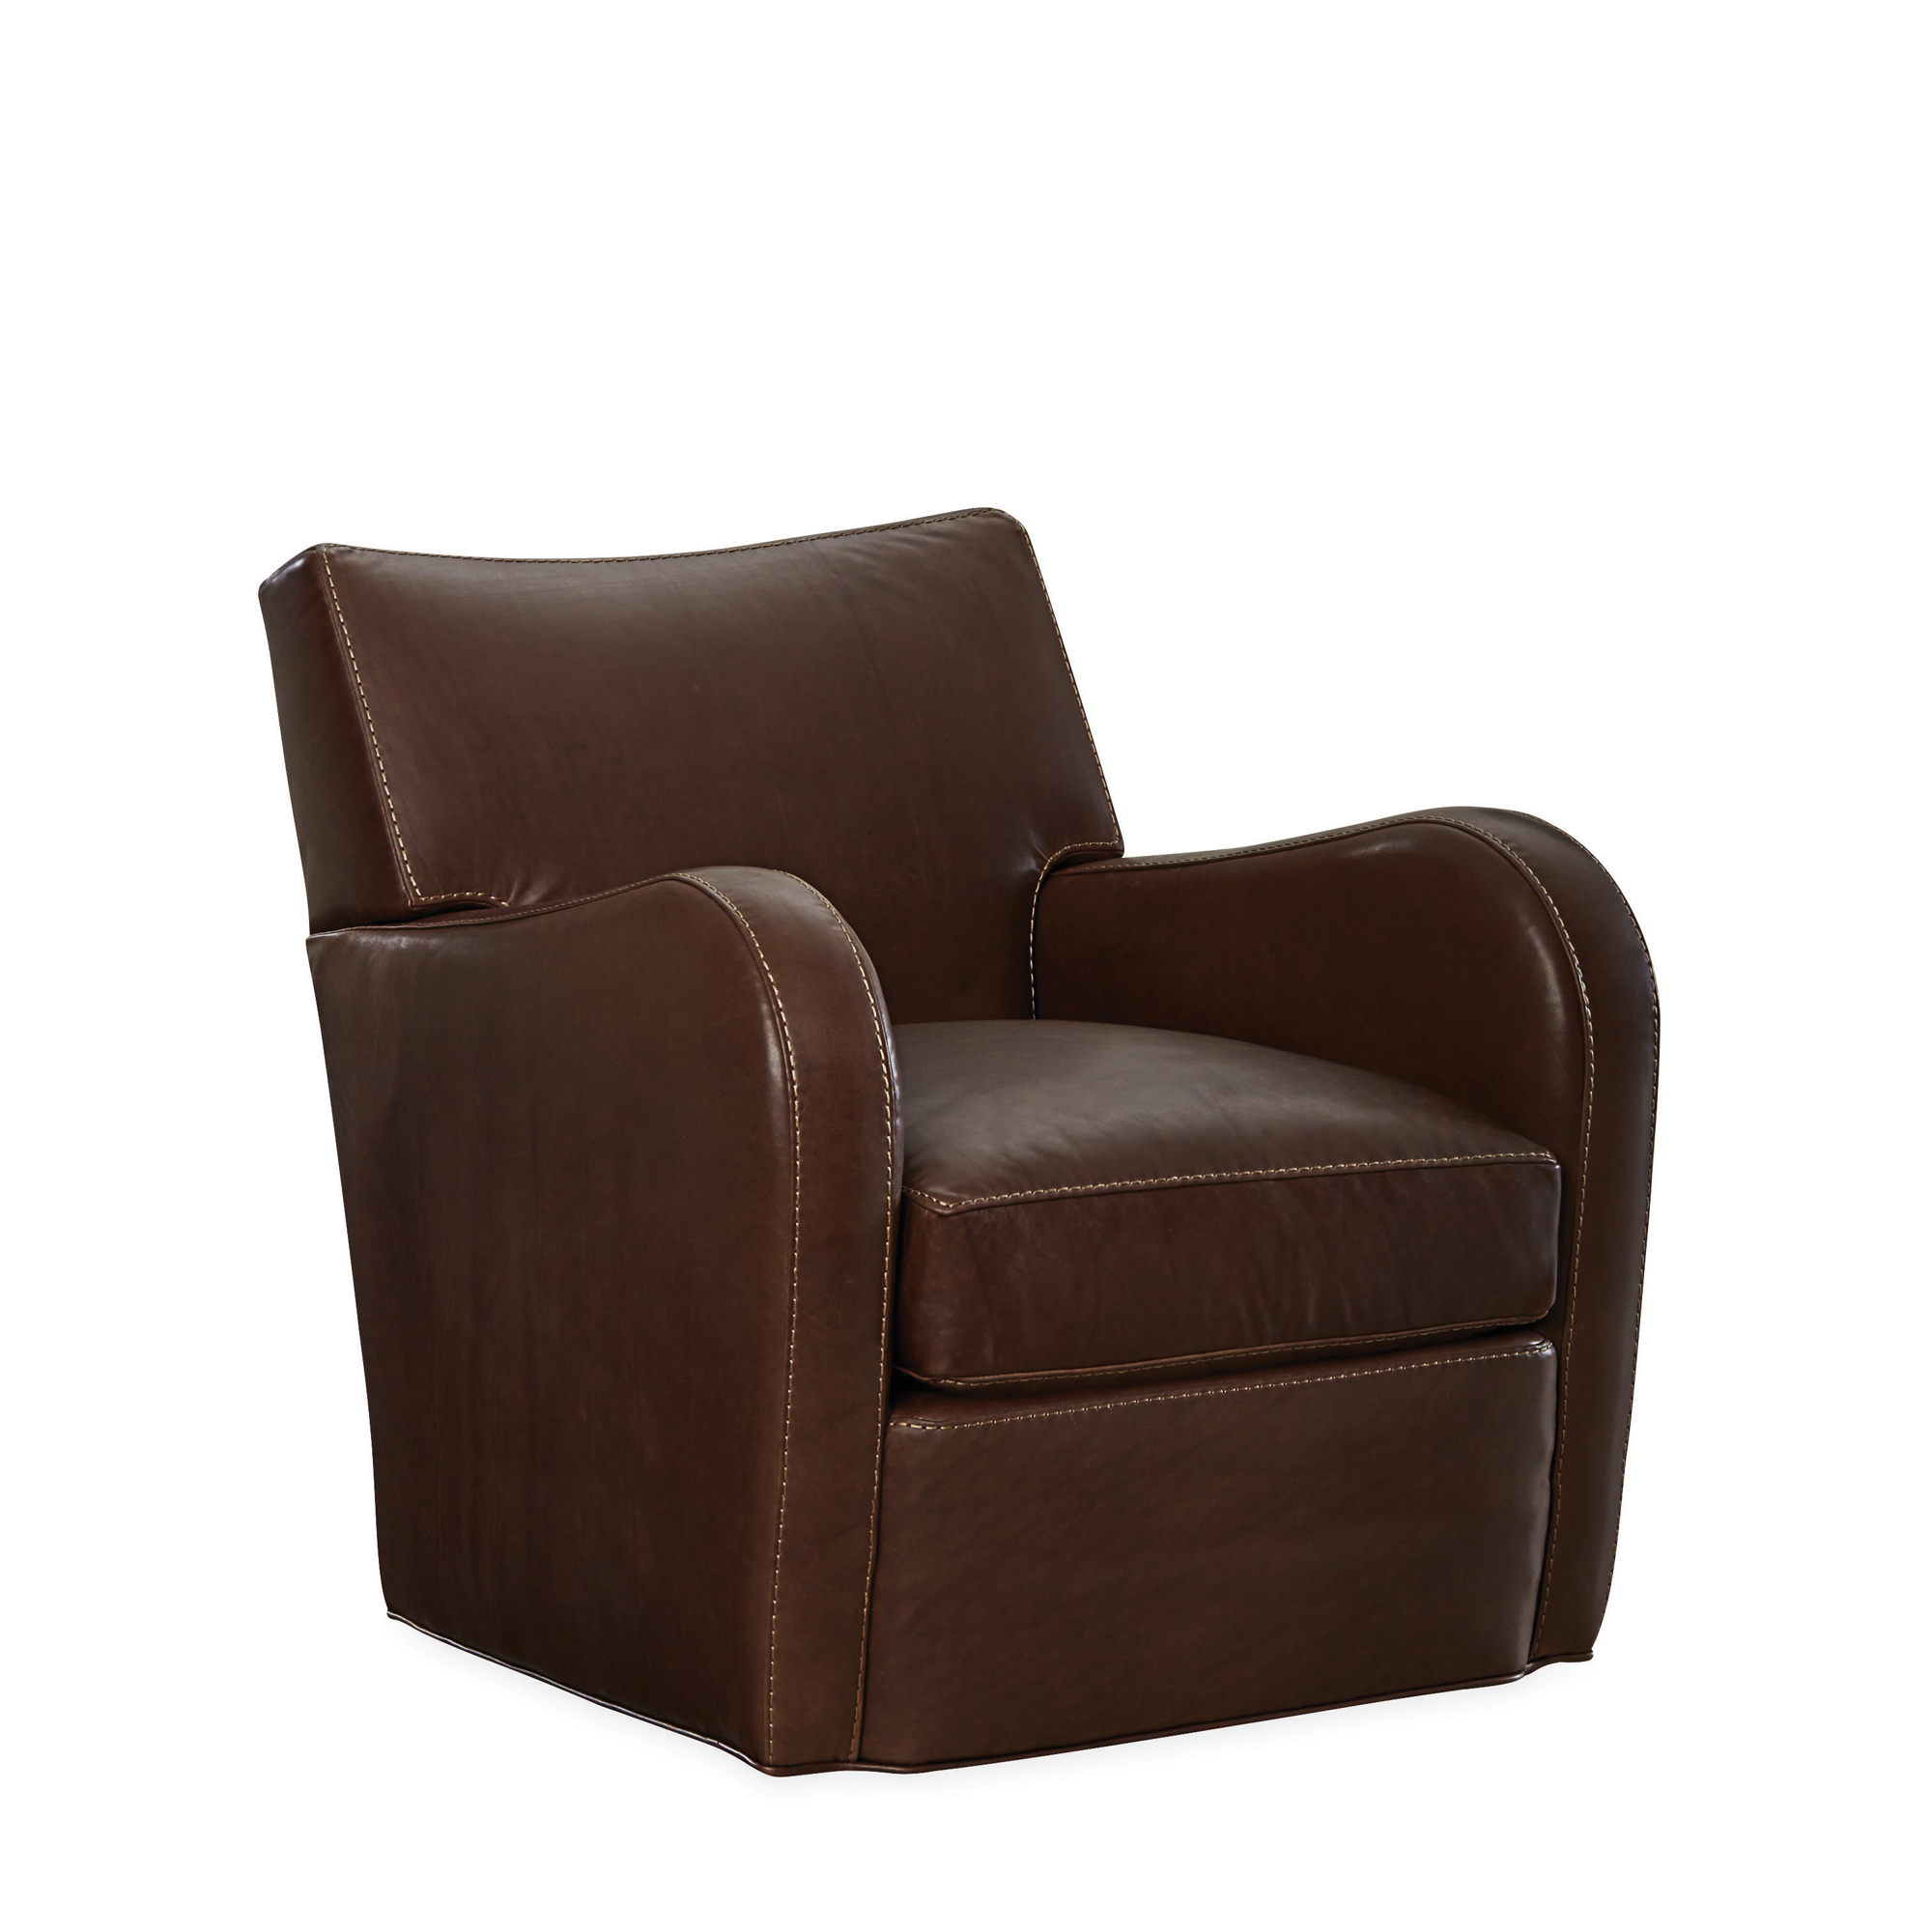 Leather_Swivel_Chair_L1283-01SW_LEE_2.jpg